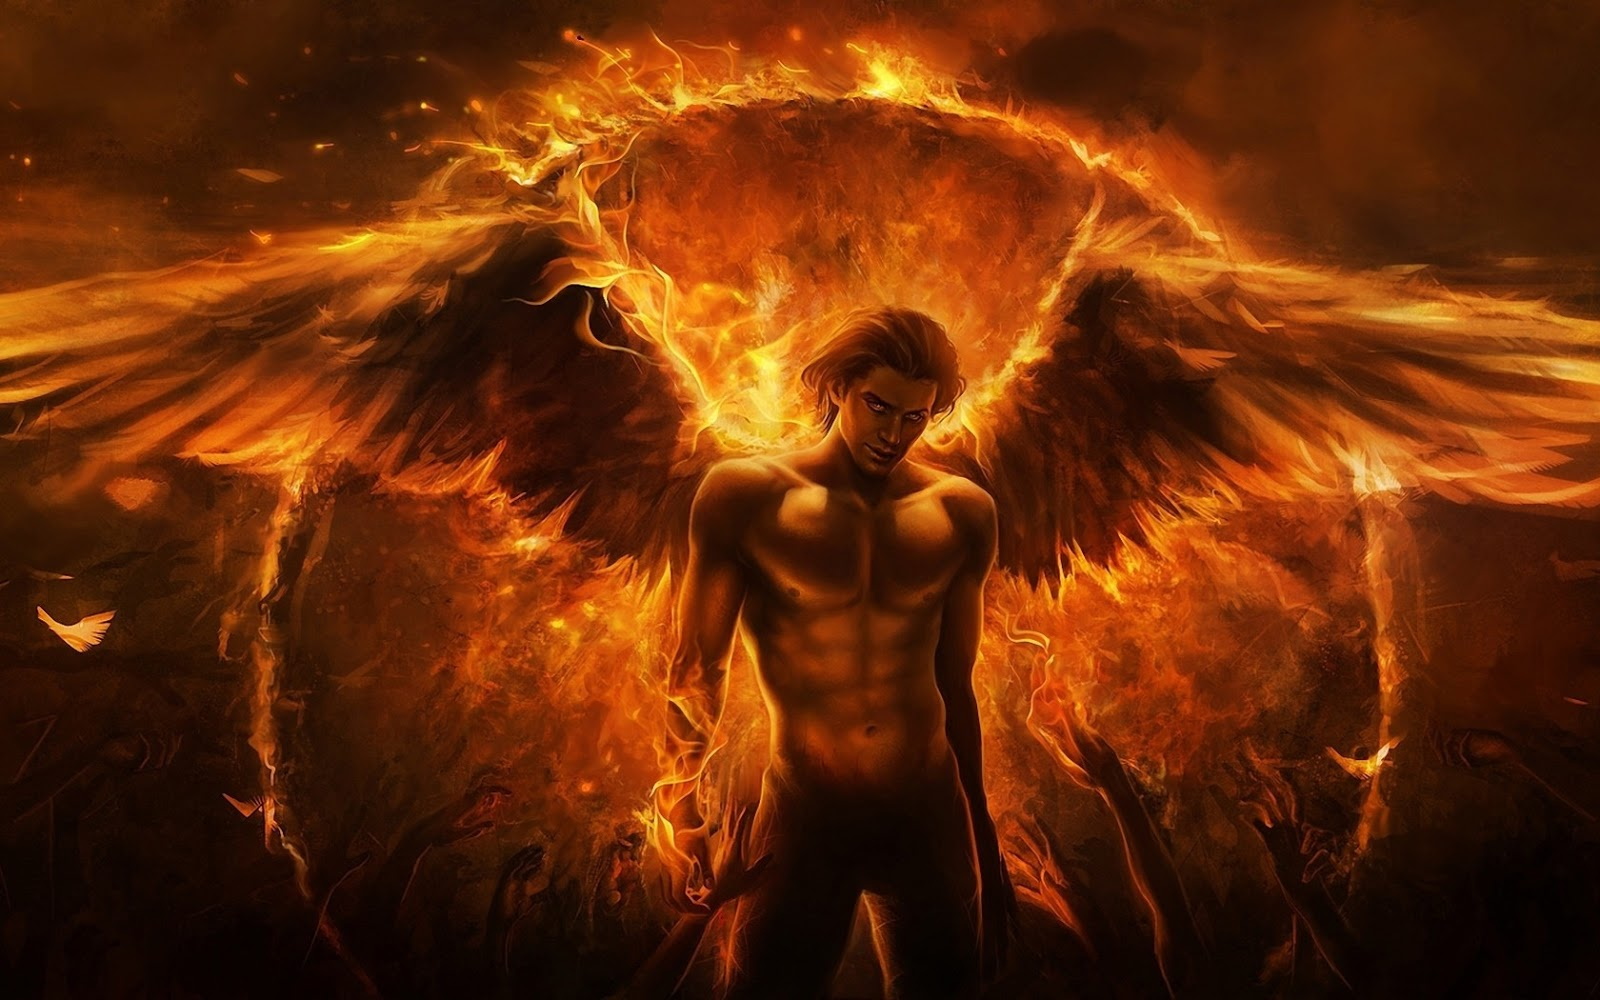 WallSheets Angel Of Hell Desktop Wallpapers and Backgrounds 1600x1000